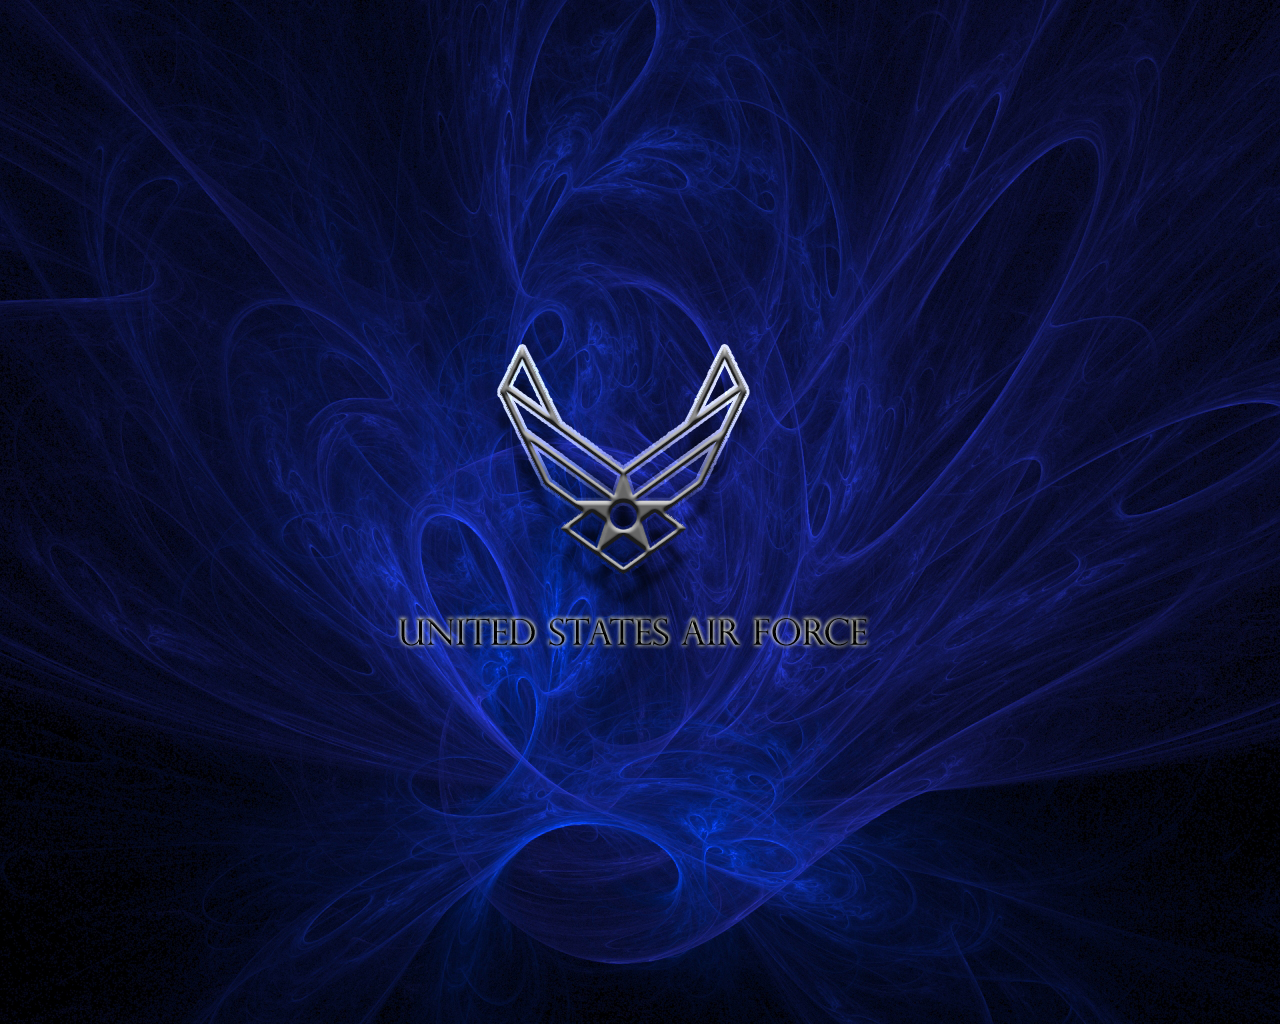 1280x1024 - Air Force Wallpaper for iPhone 41